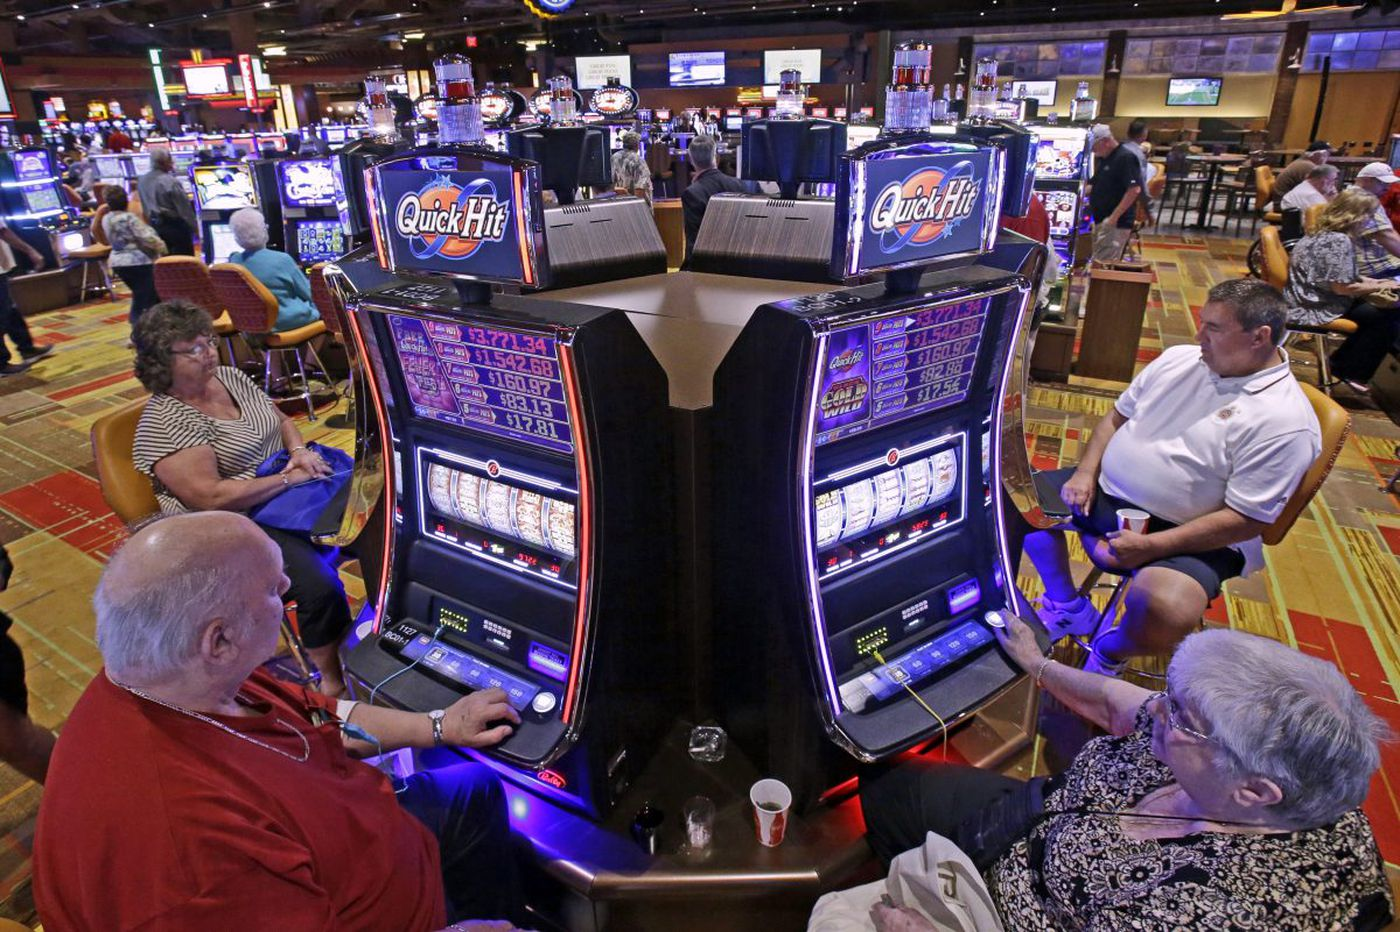 PA. Gambling expansion is a losing bet. | Editorial